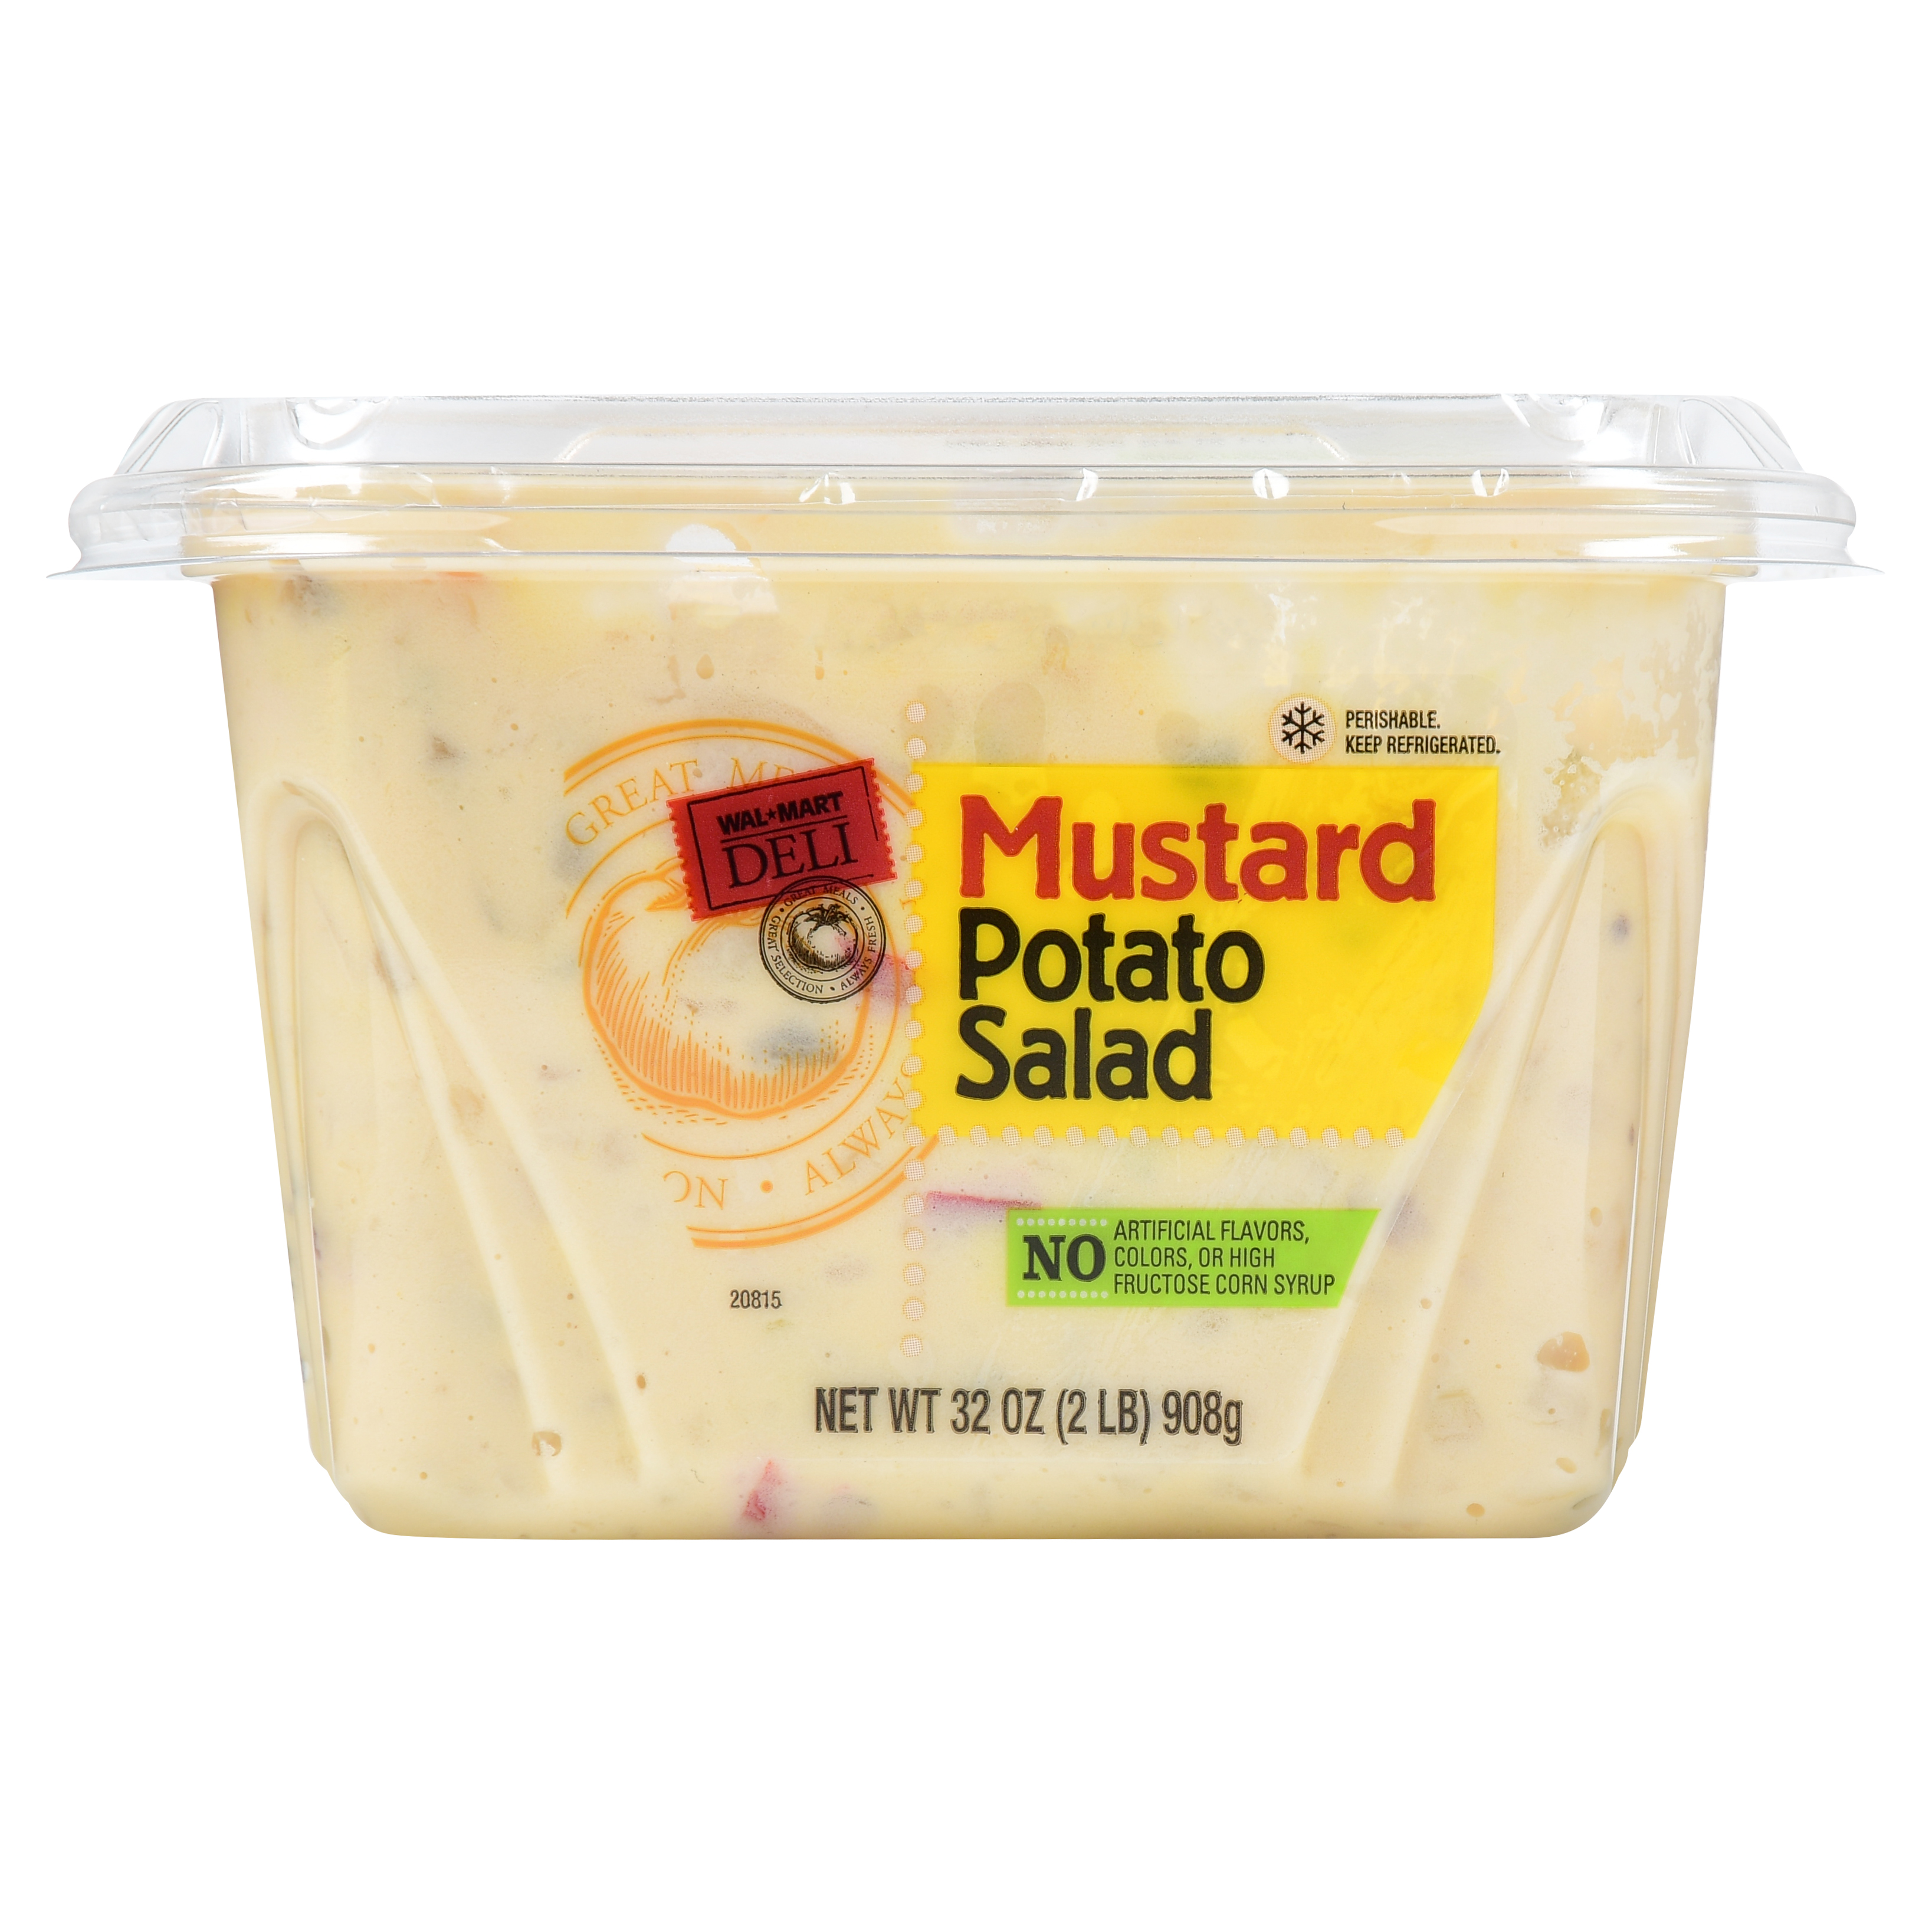 Mustard Potato Salad, 2 lbs.